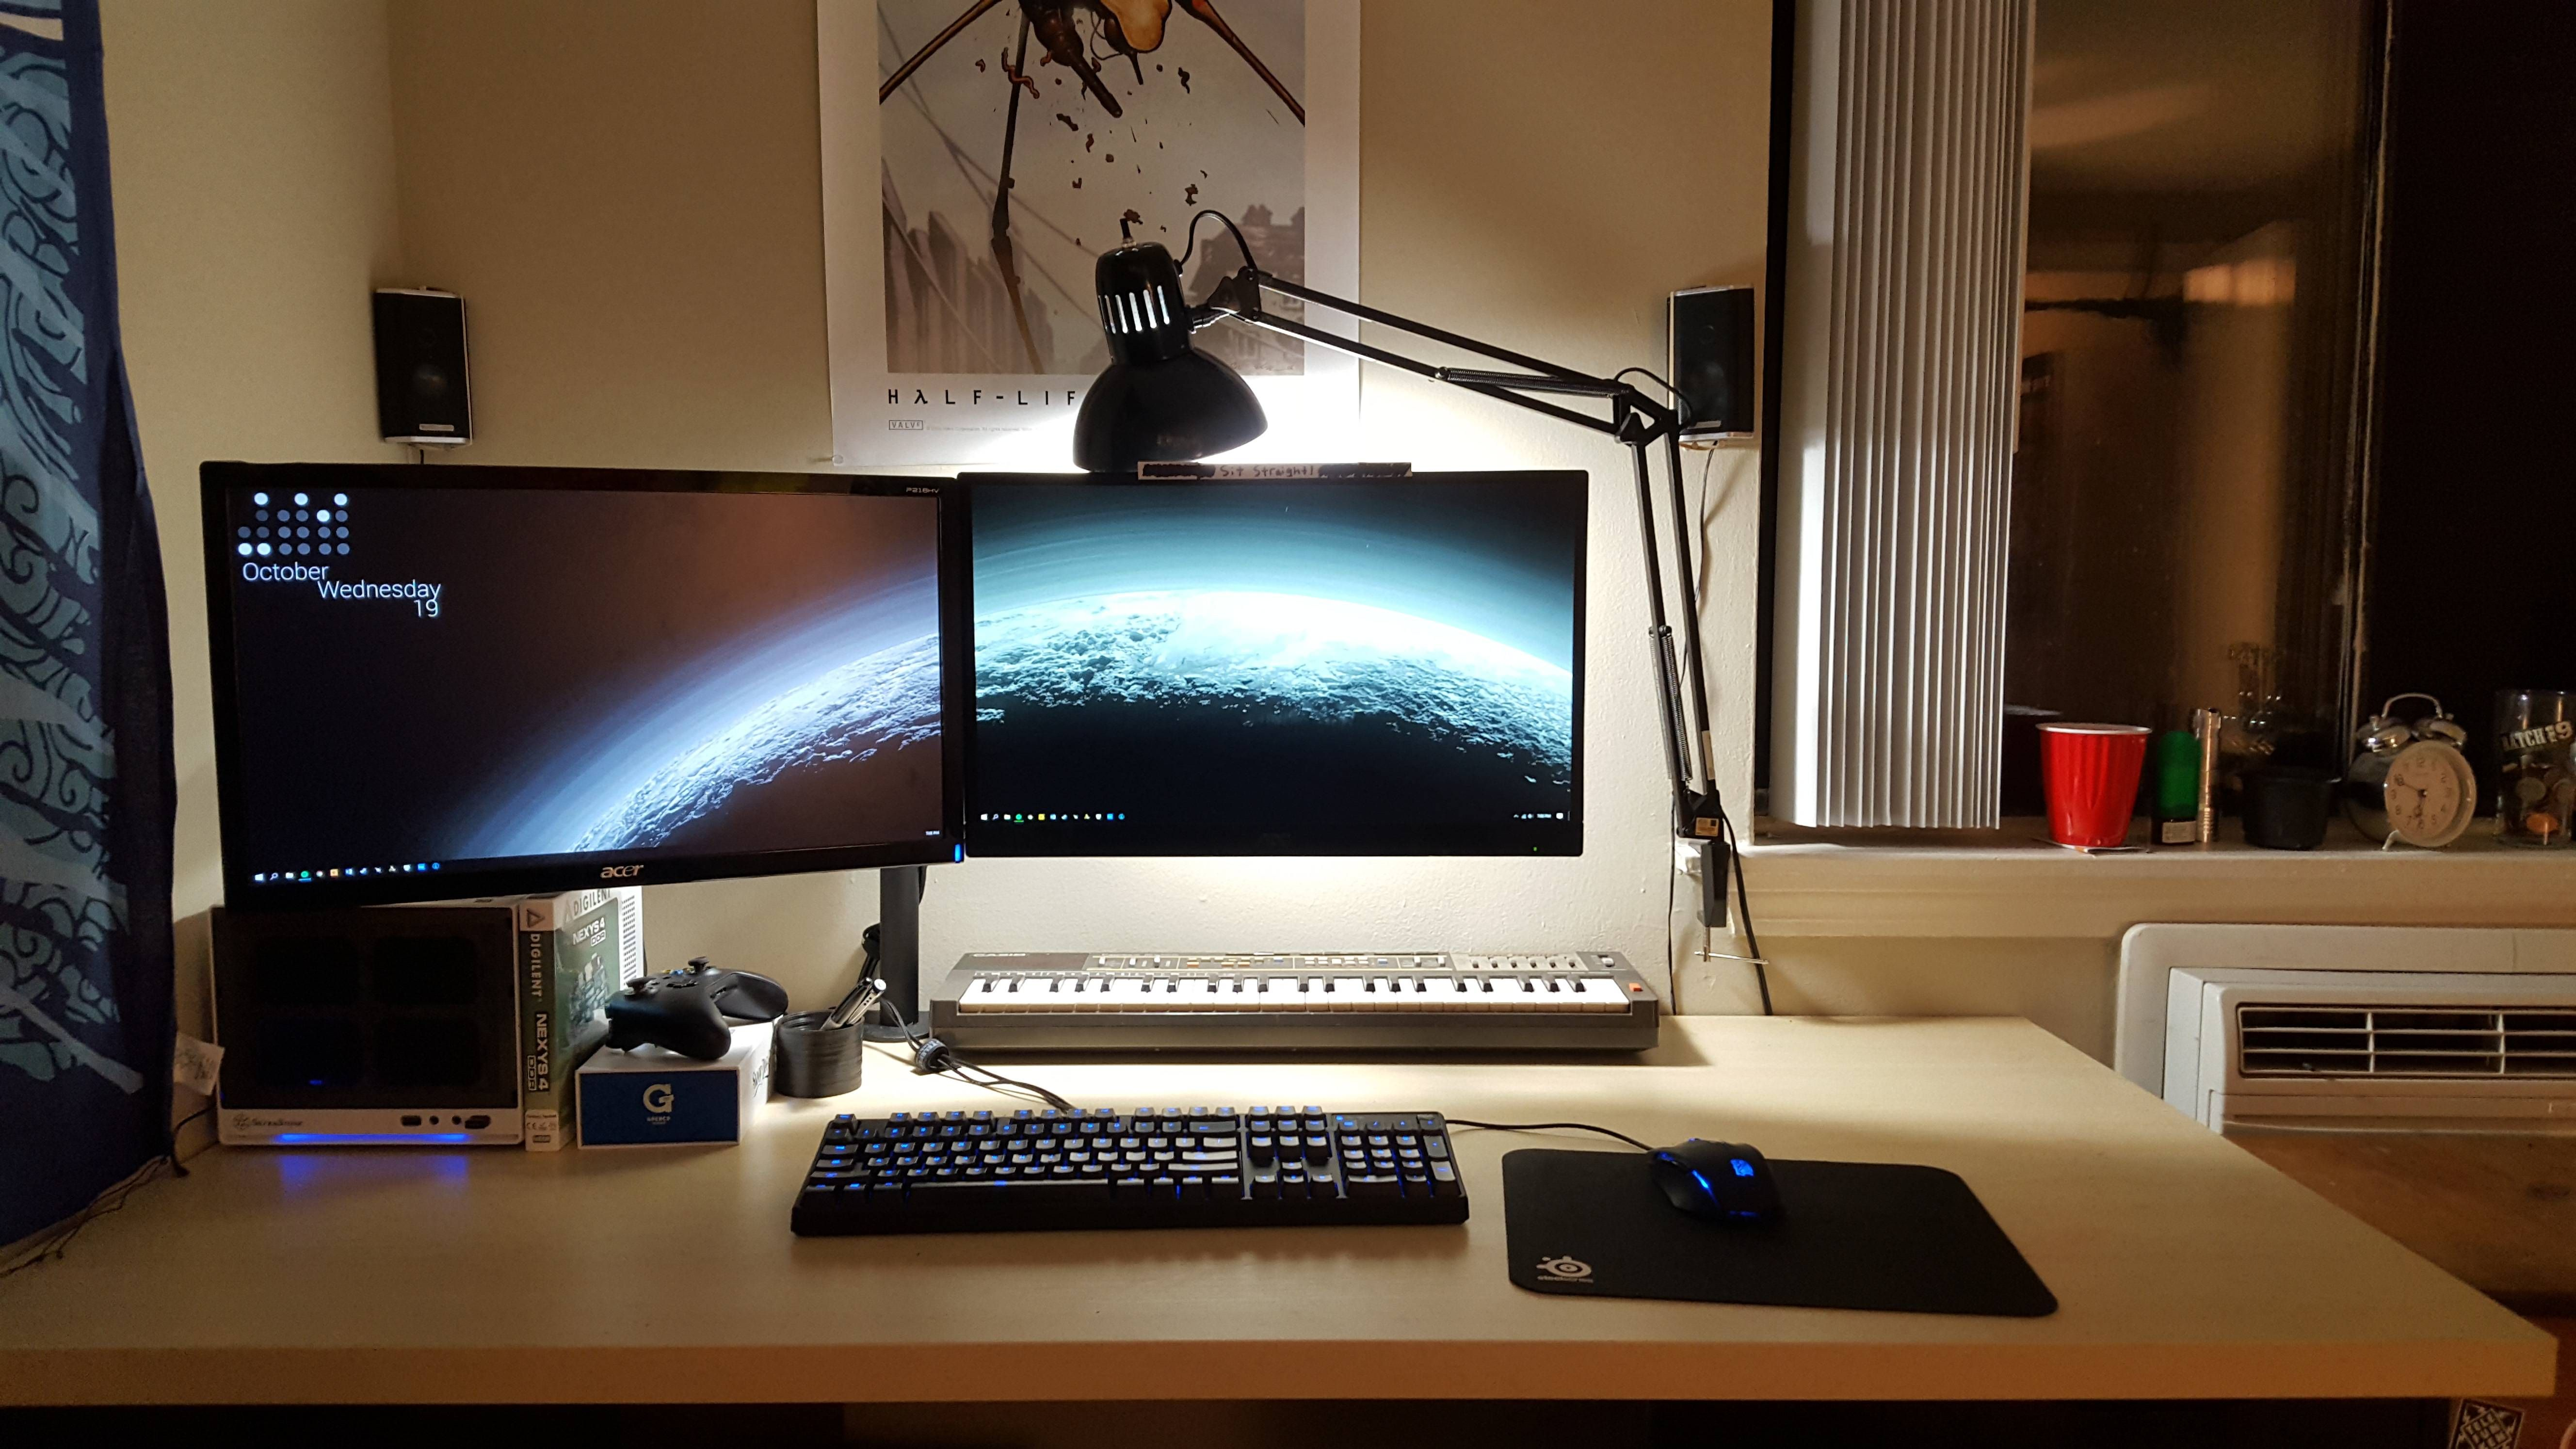 Mini Itx With Floating Dual 1080p Monitors On A Big Pale Ikea Table Top Office Desk Set Walmart Home Gaming Desk Setup